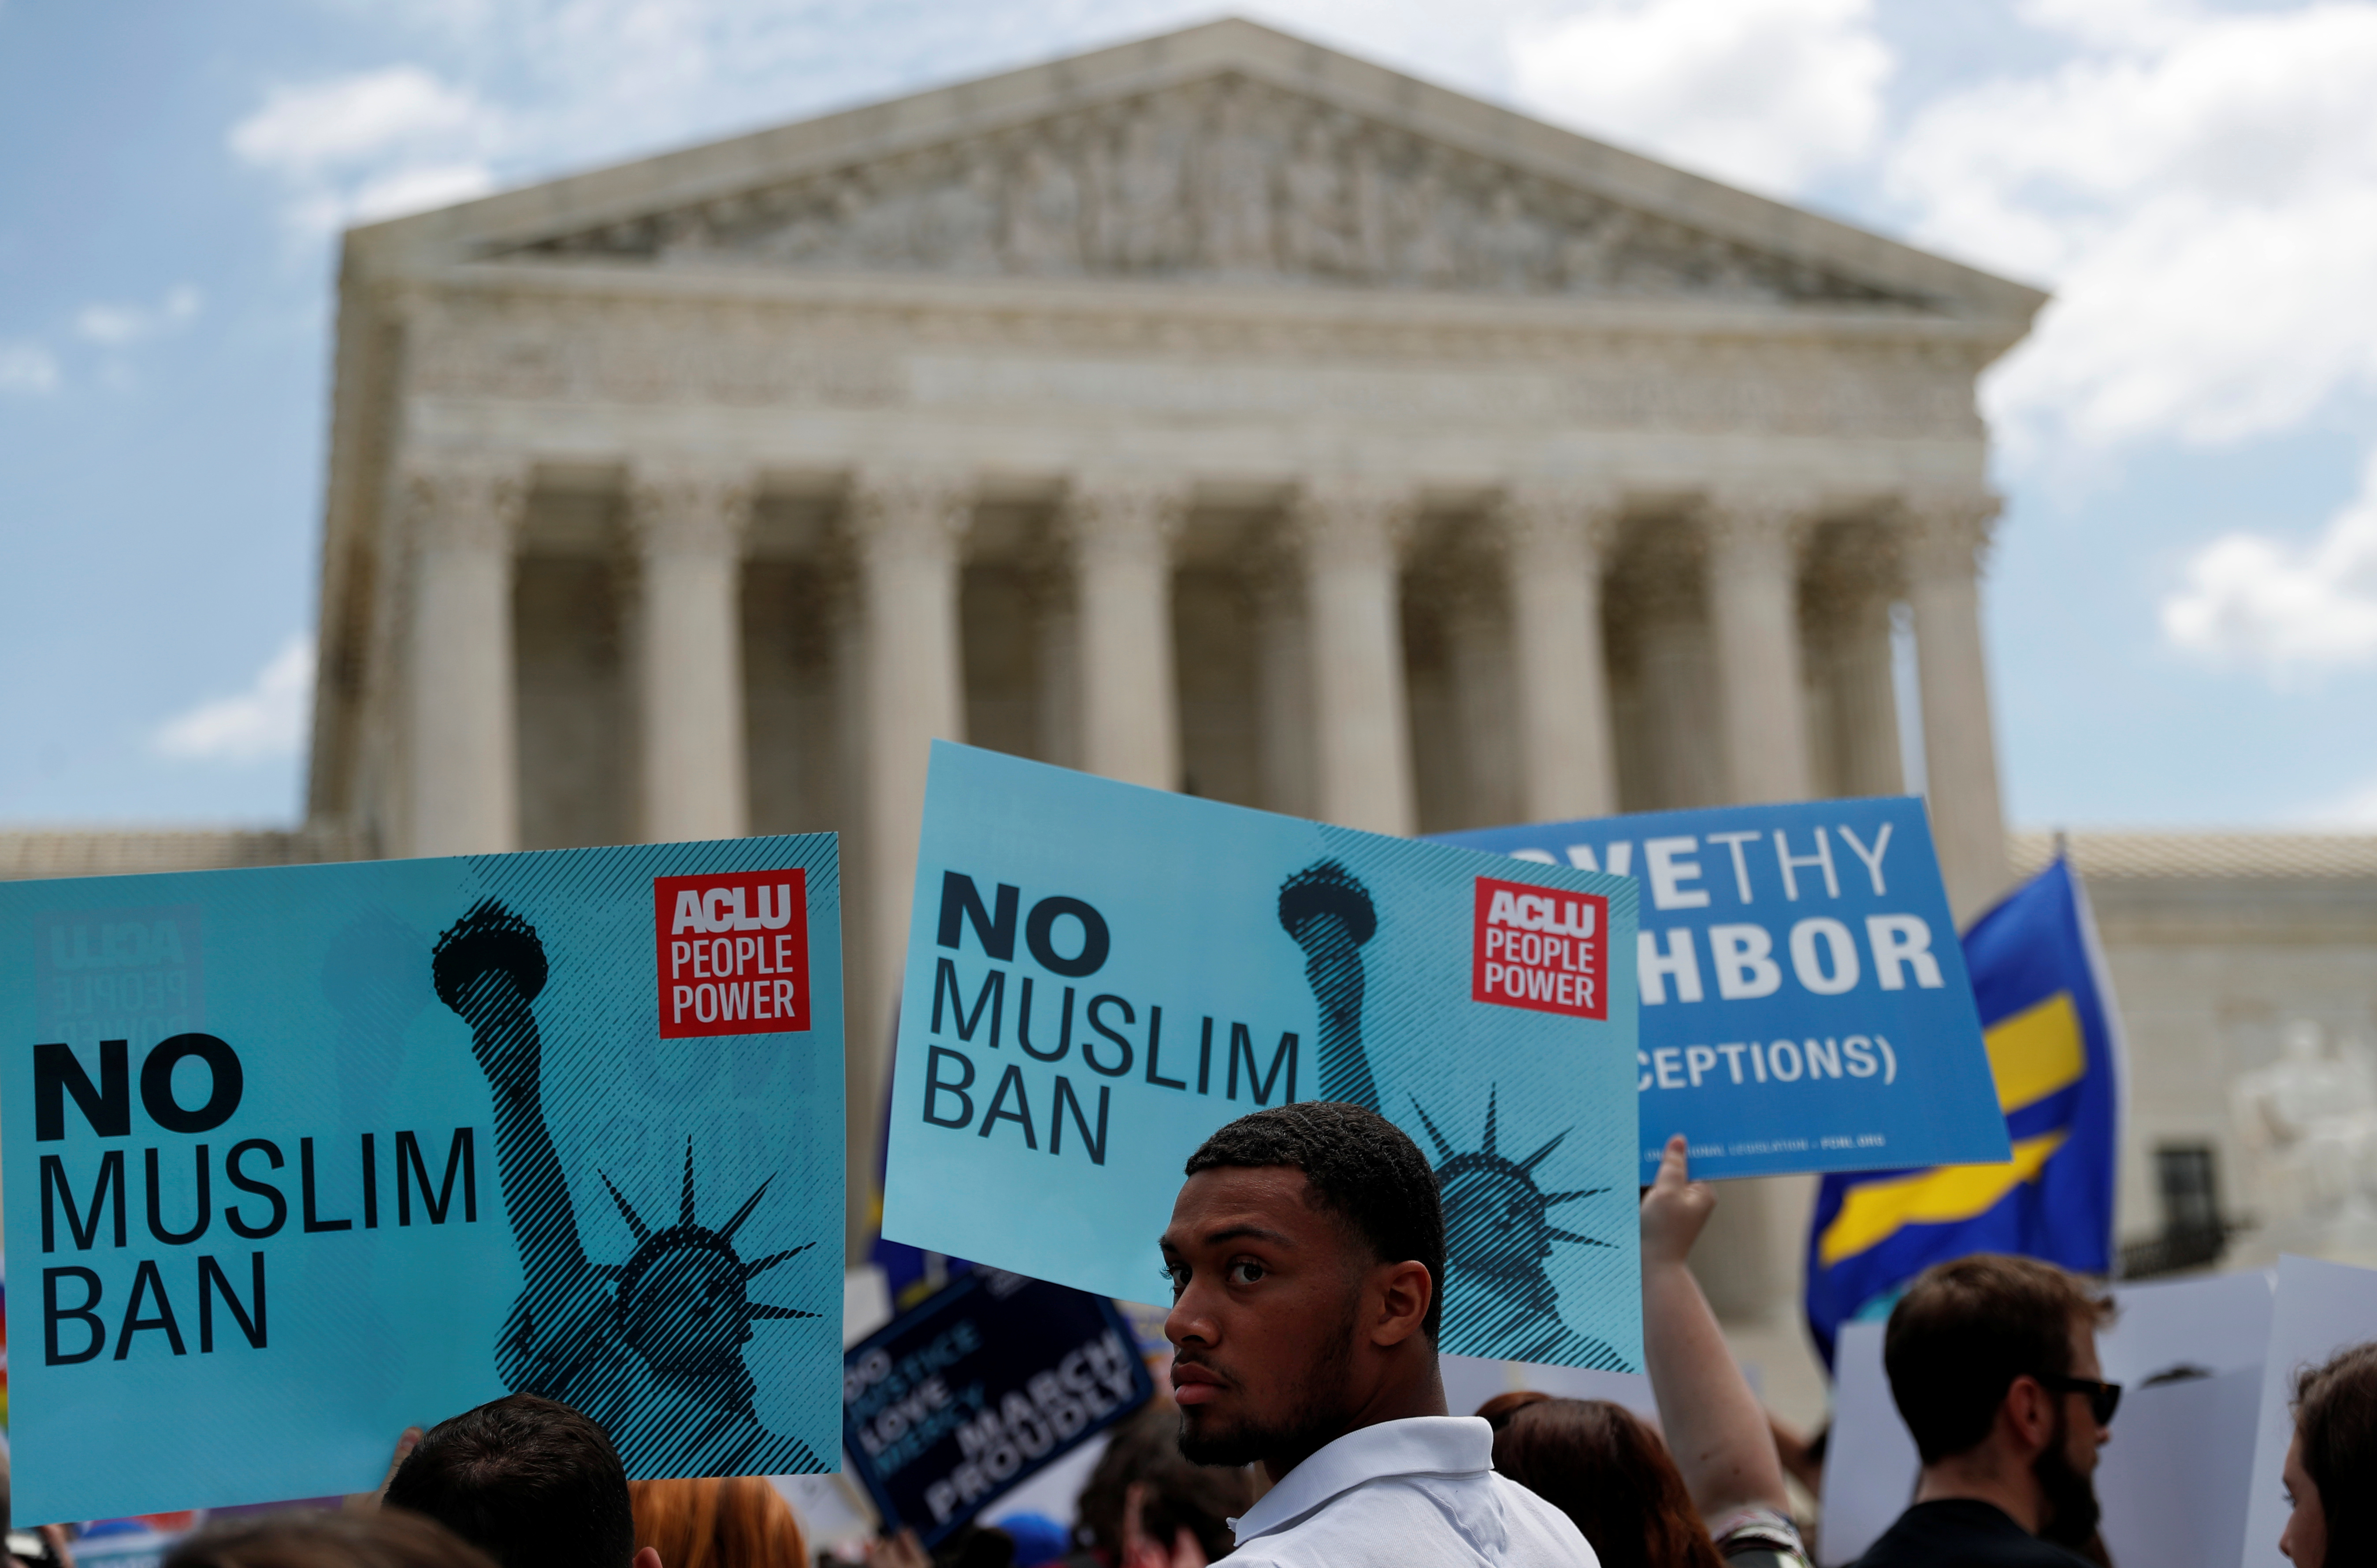 Demonstrators picket the Supreme Court after the justices upheld President Trump's travel ban on June 26, 2018. REUTERS/Leah Millis